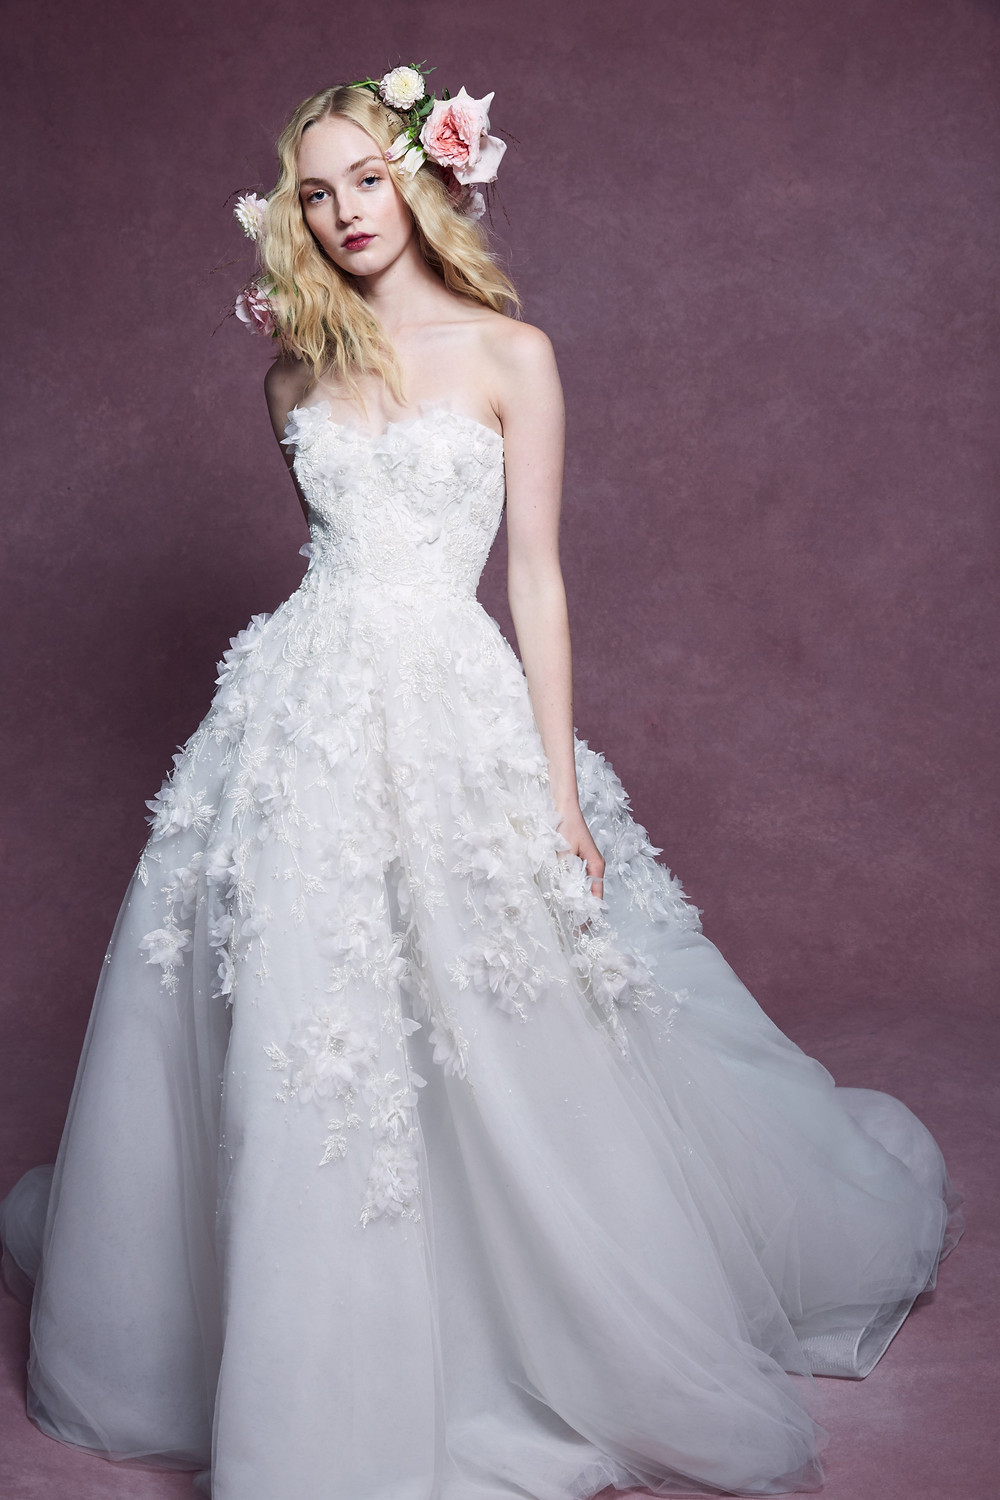 A Marchesa 2020 tulle ball gown wedding dress with sweetheart neckline corset top and flowers